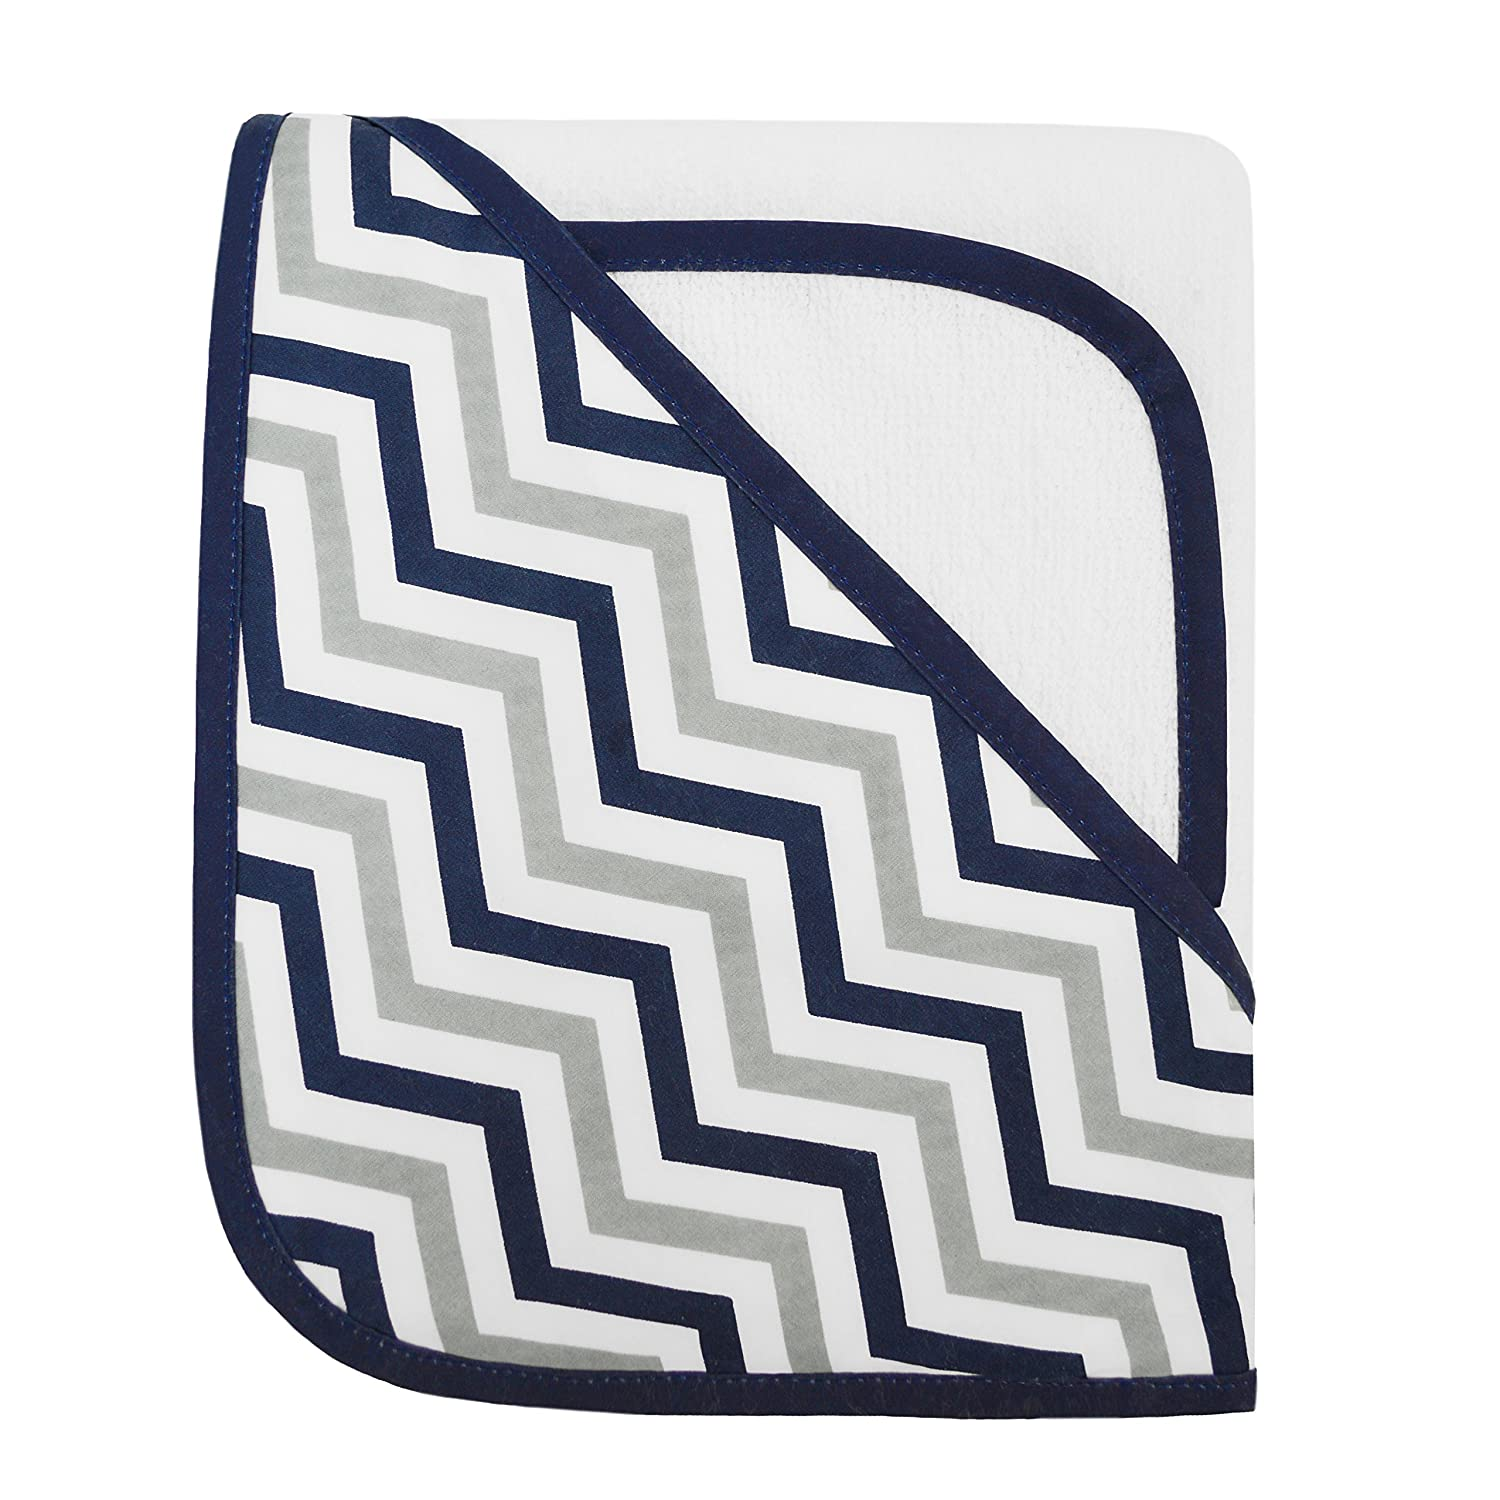 American Baby Company Zigzag Terry Hooded Towel Set Made with Organic Cotton, Dark Navy, for Boys